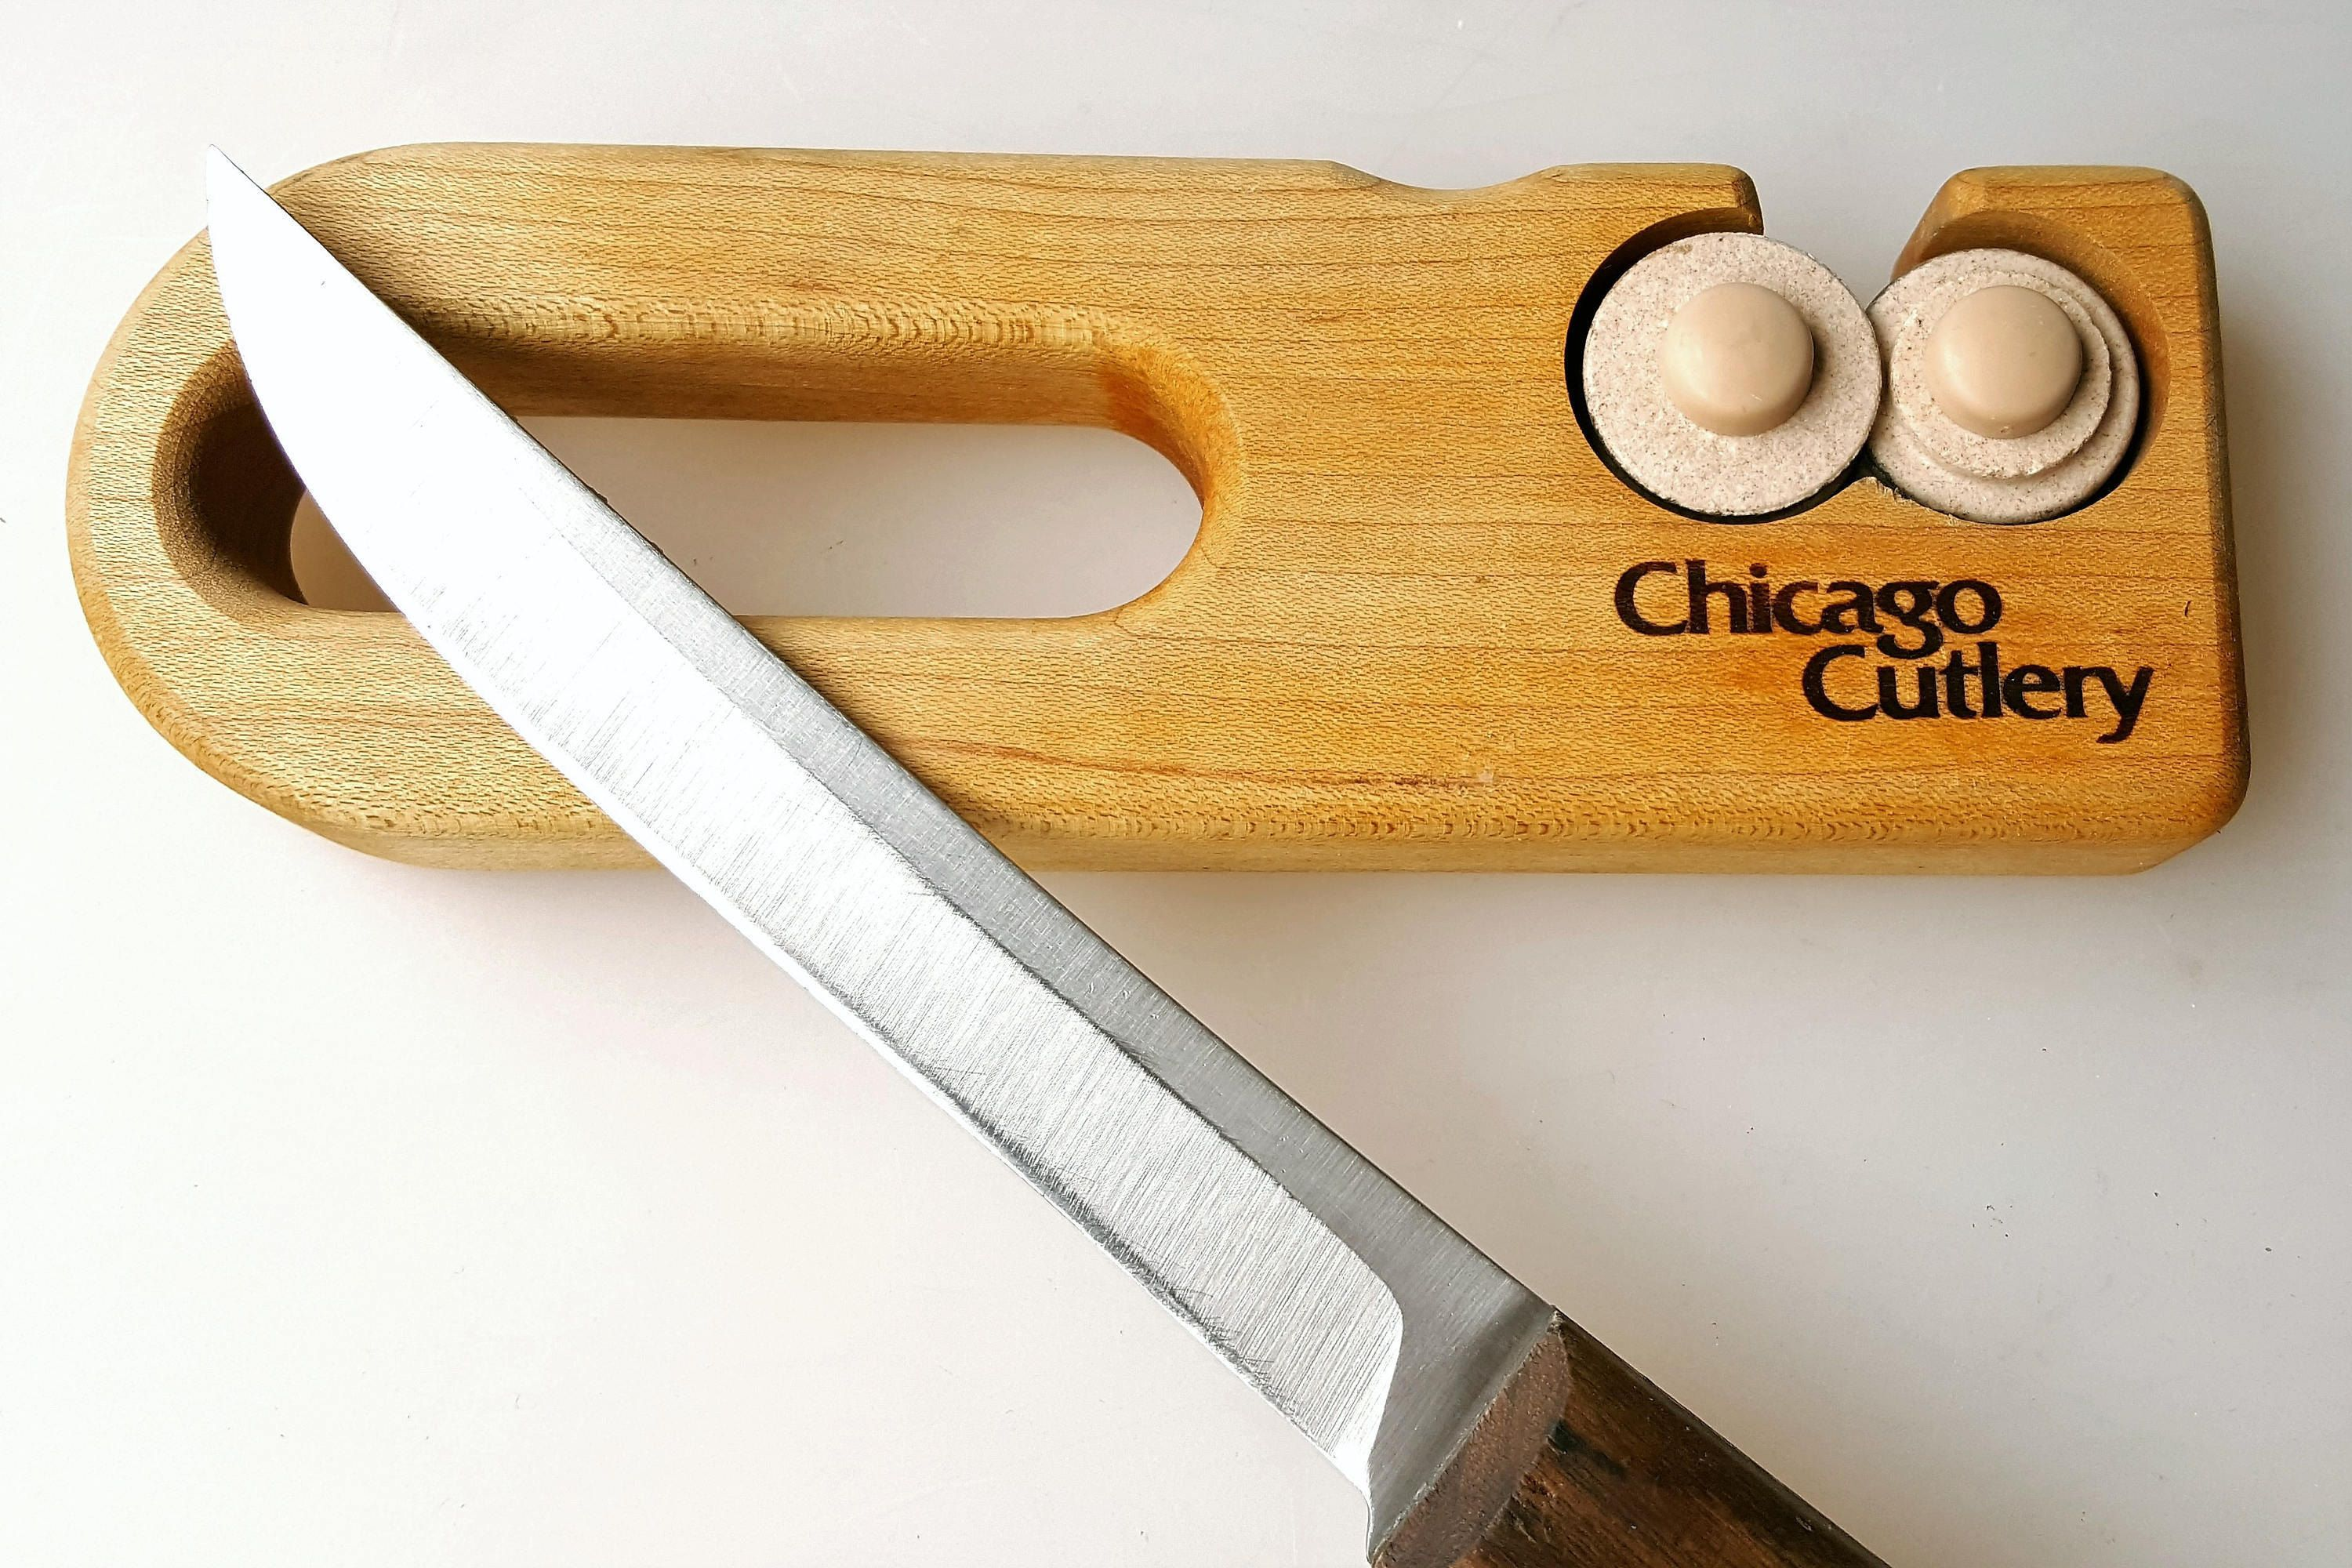 Chicago cutlery knife sharpener handheld wood with